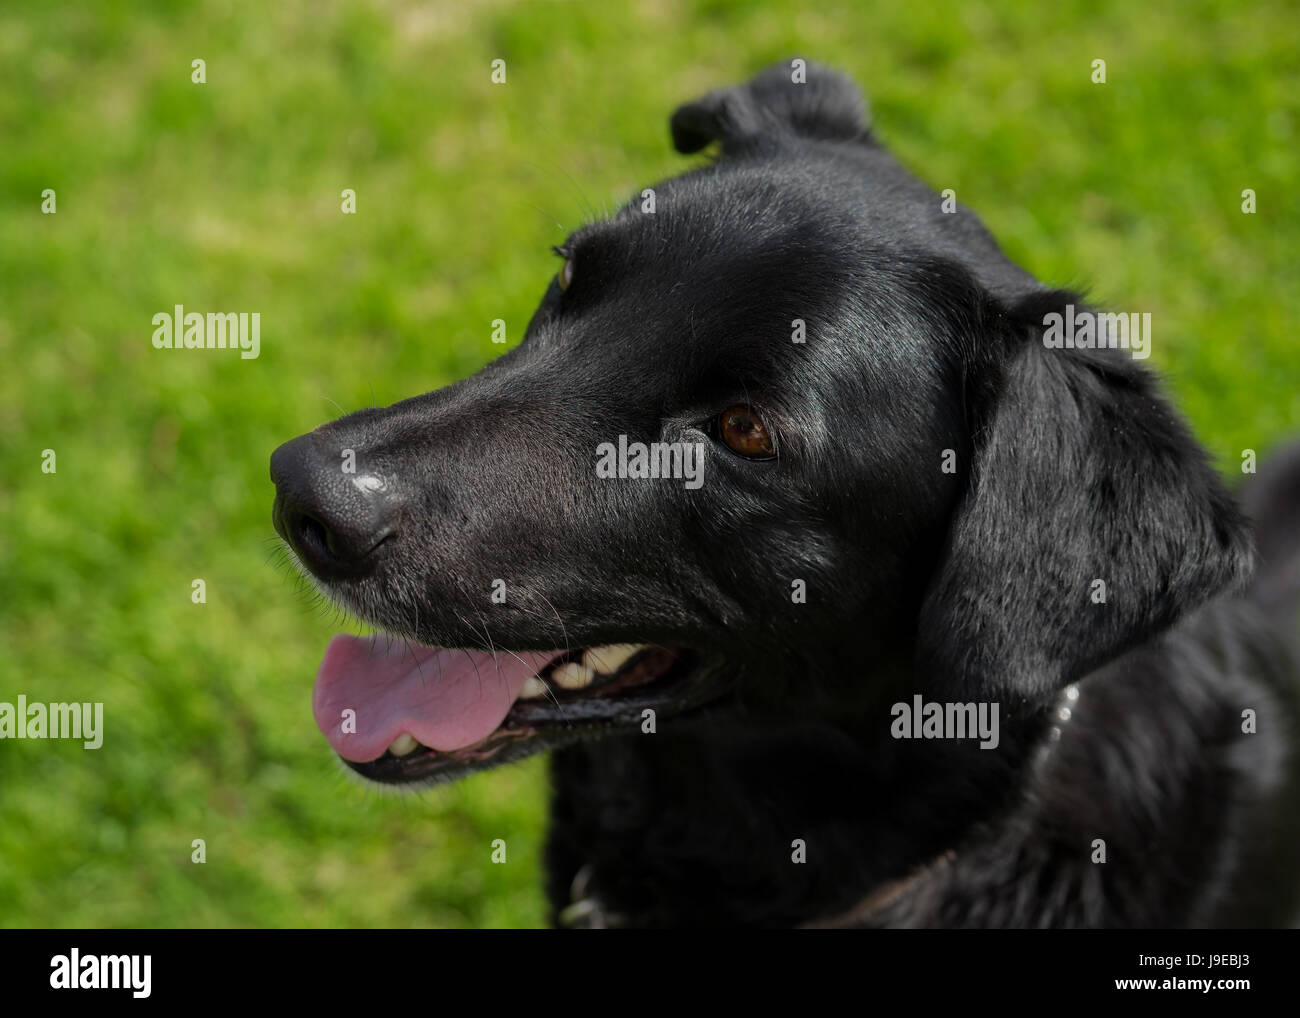 Young black lab or mixed breed dog. Stock Photo